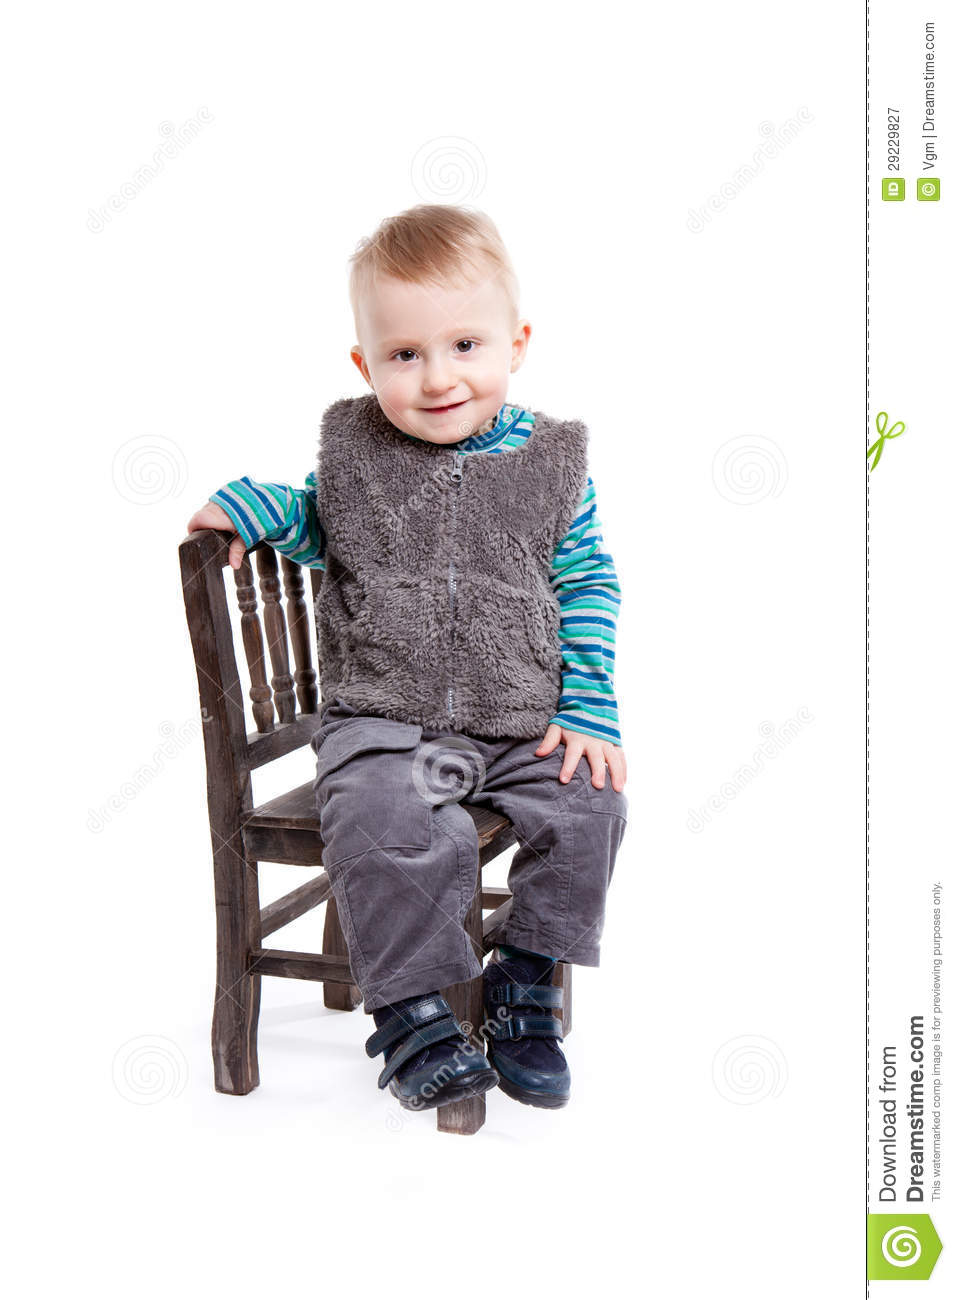 Baby Boy Sitting On A Chair Royalty Free Stock Photography